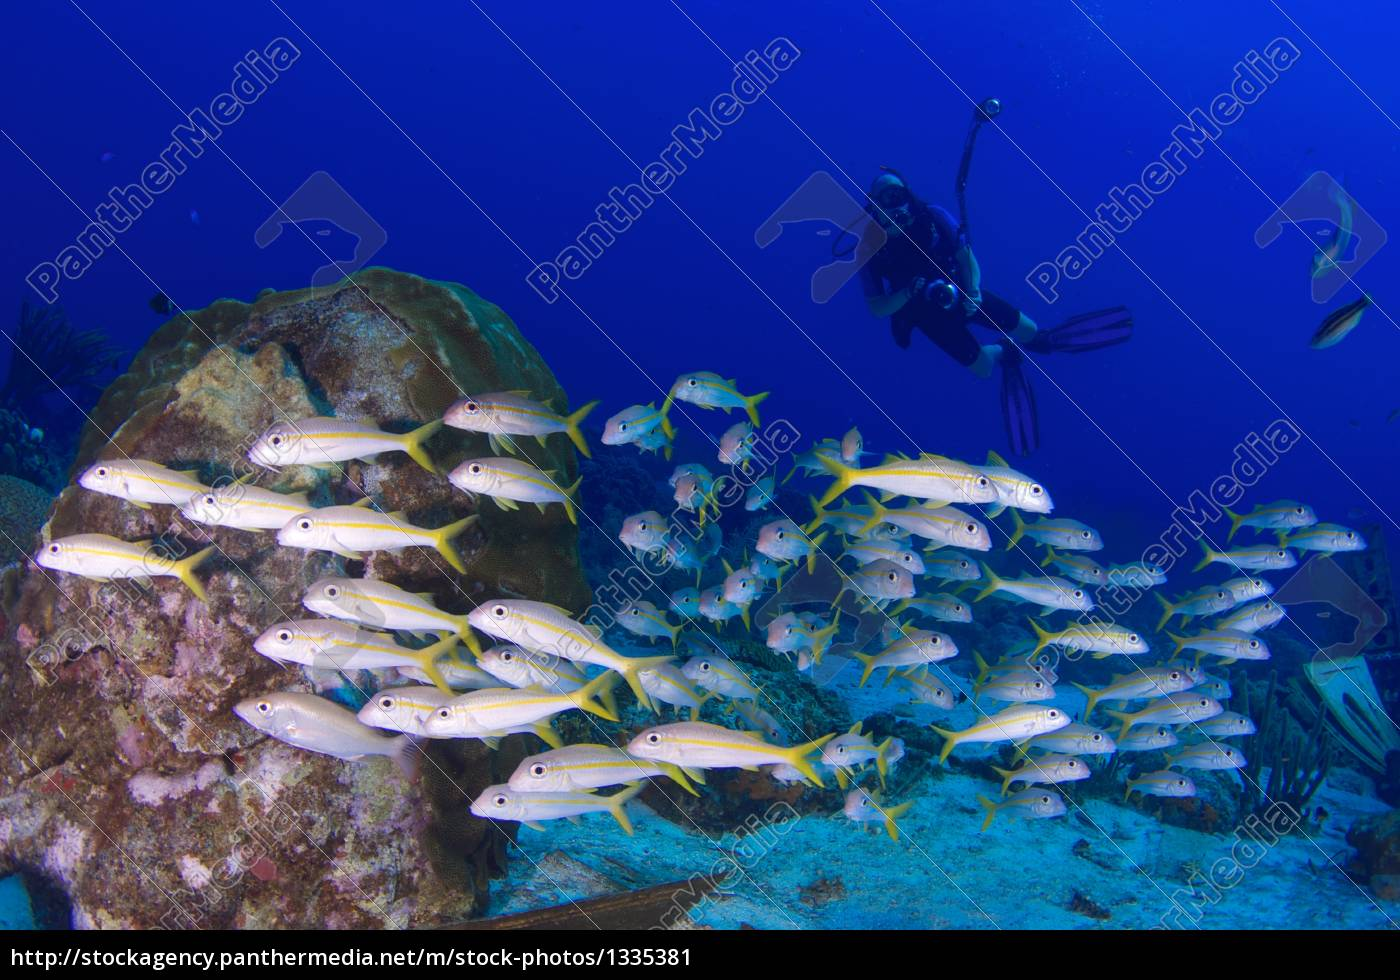 fish, swarm, and, divers - 1335381